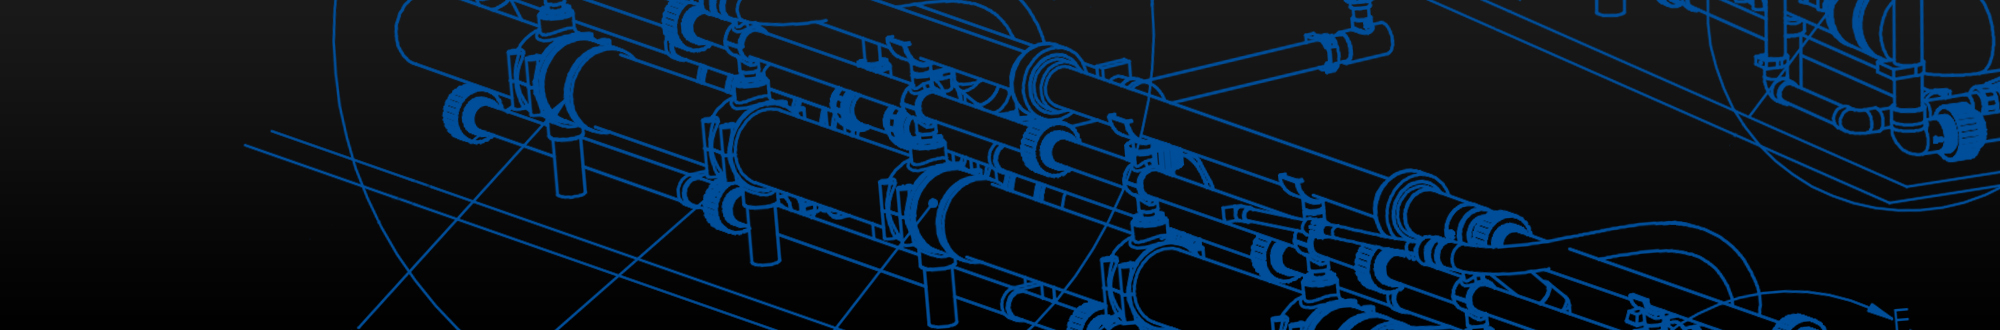 Pipe and Tubing Fittings